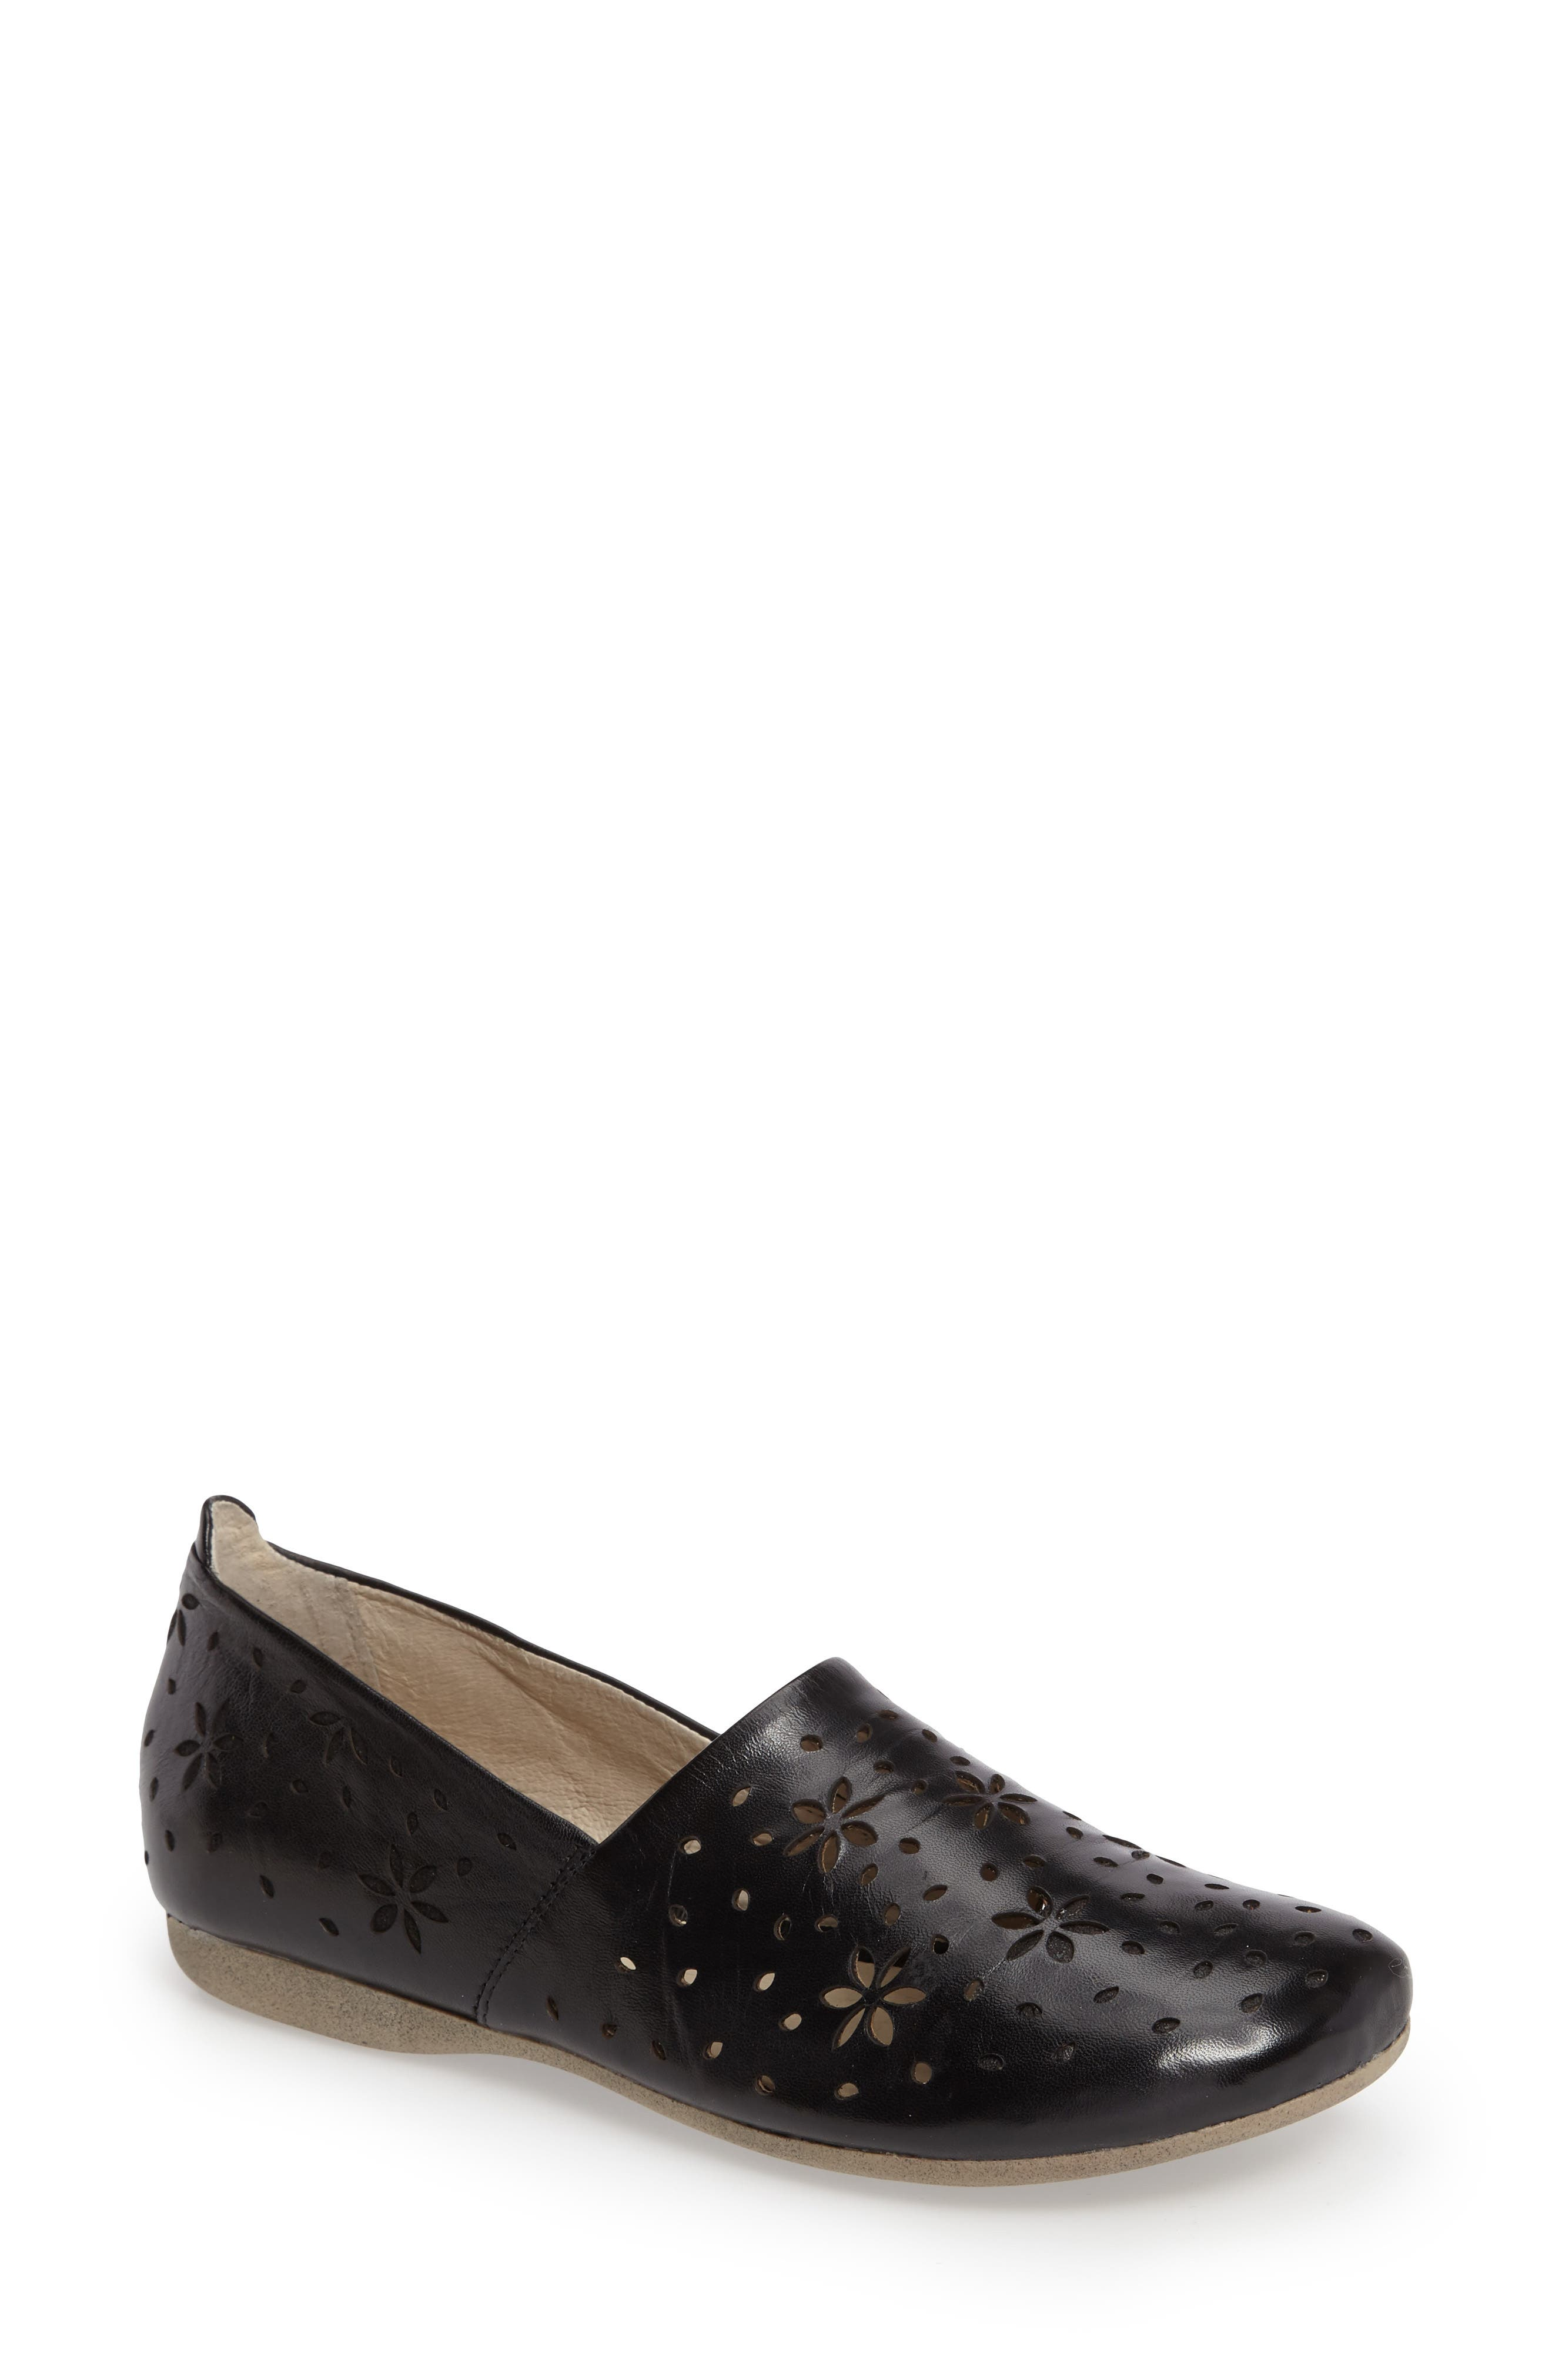 Fiona 31 Perforated Flat,                         Main,                         color,